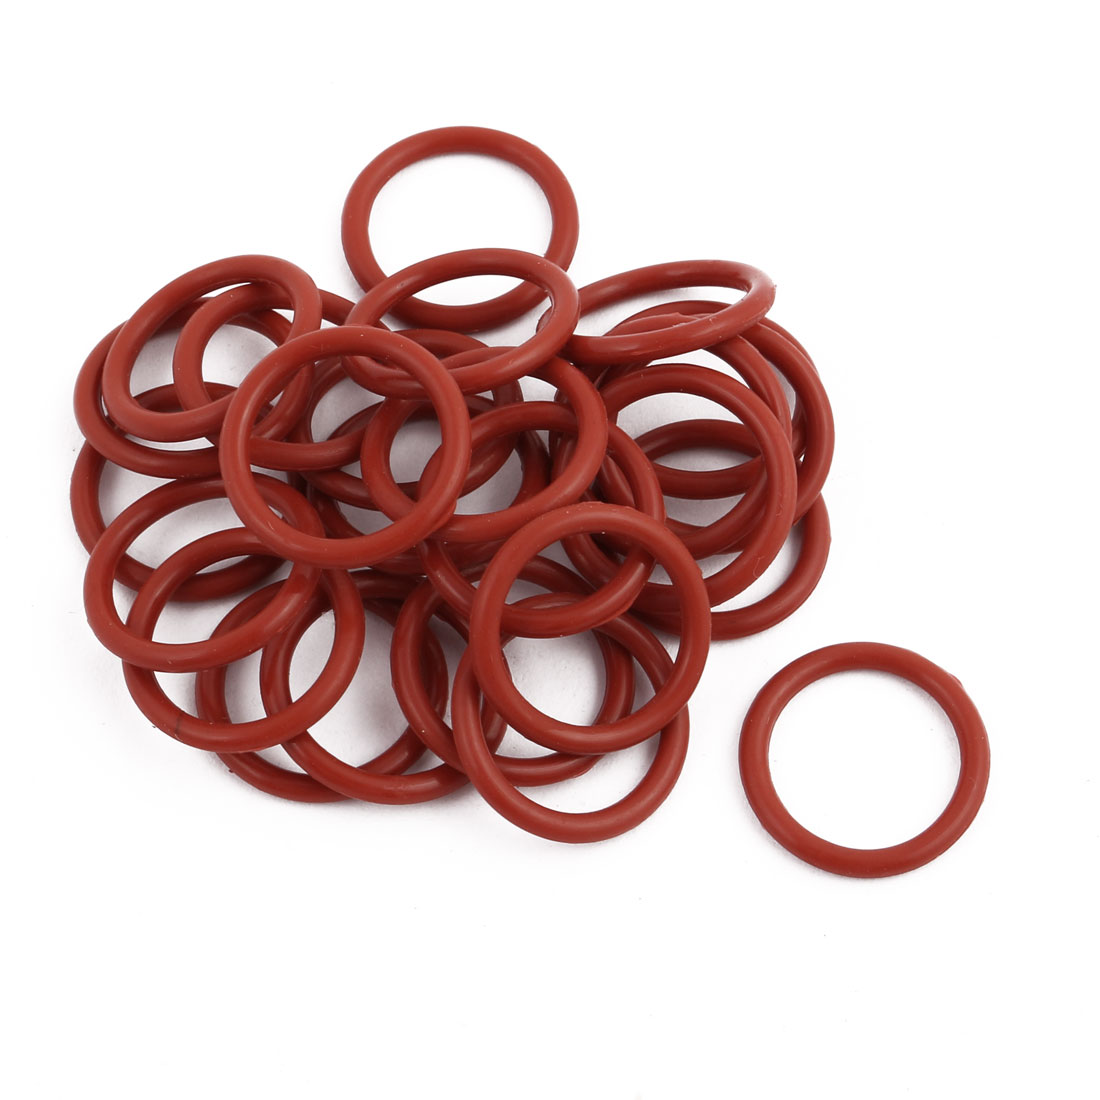 25Pcs Red Round Nitrile Butadiene Rubber NBR O-Ring 17mm OD 1.9mm Width